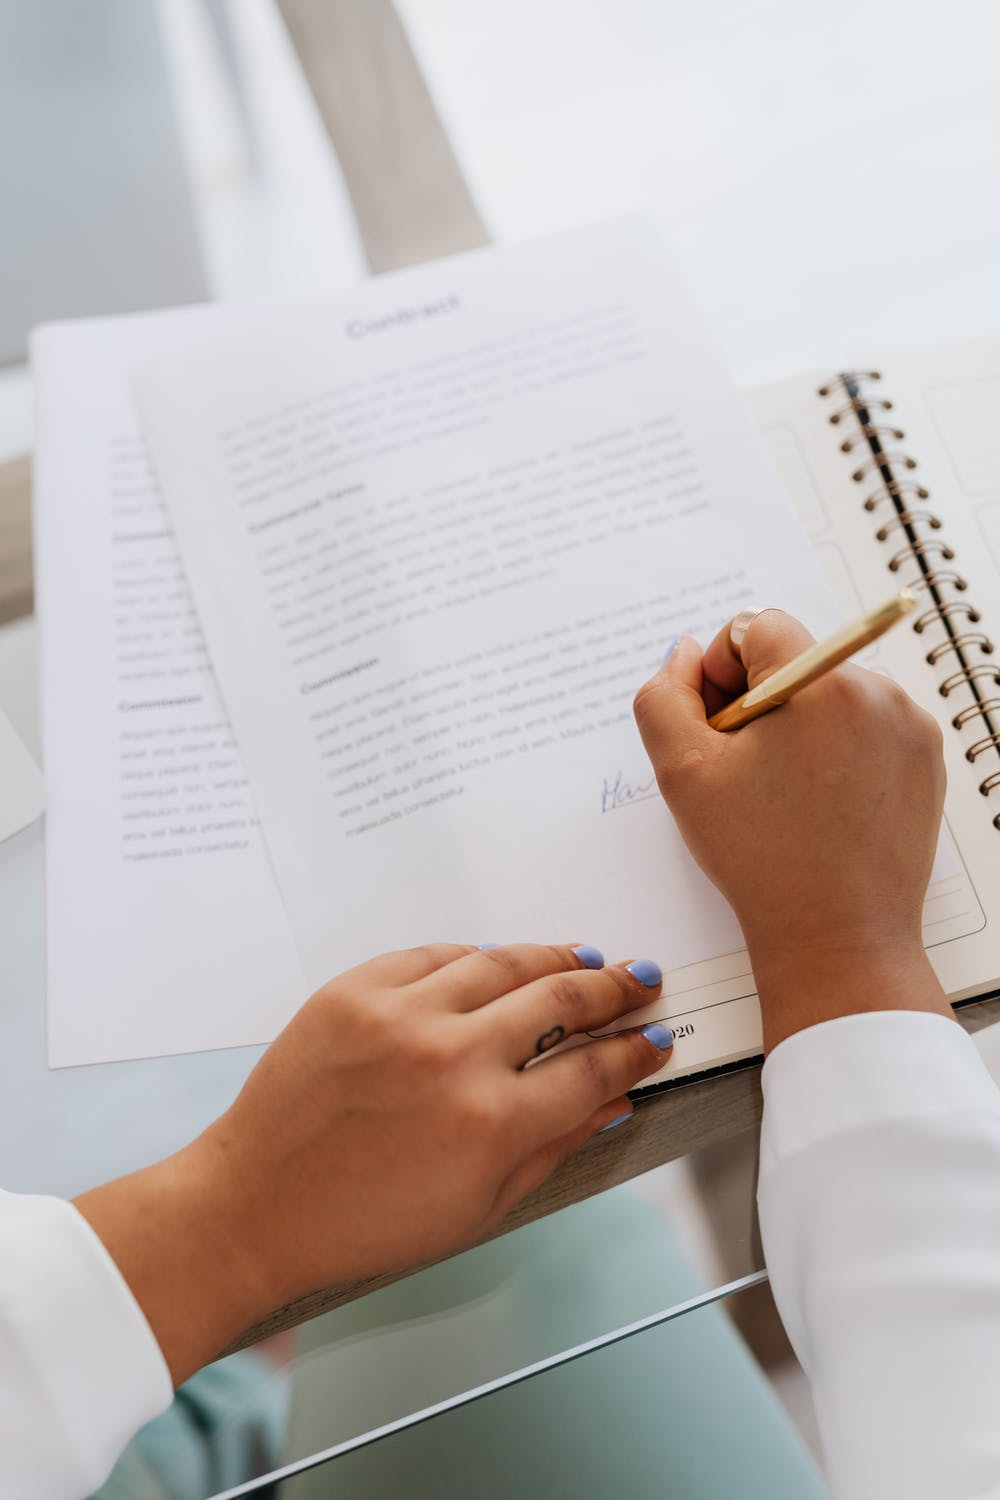 What estate planning documents do you need